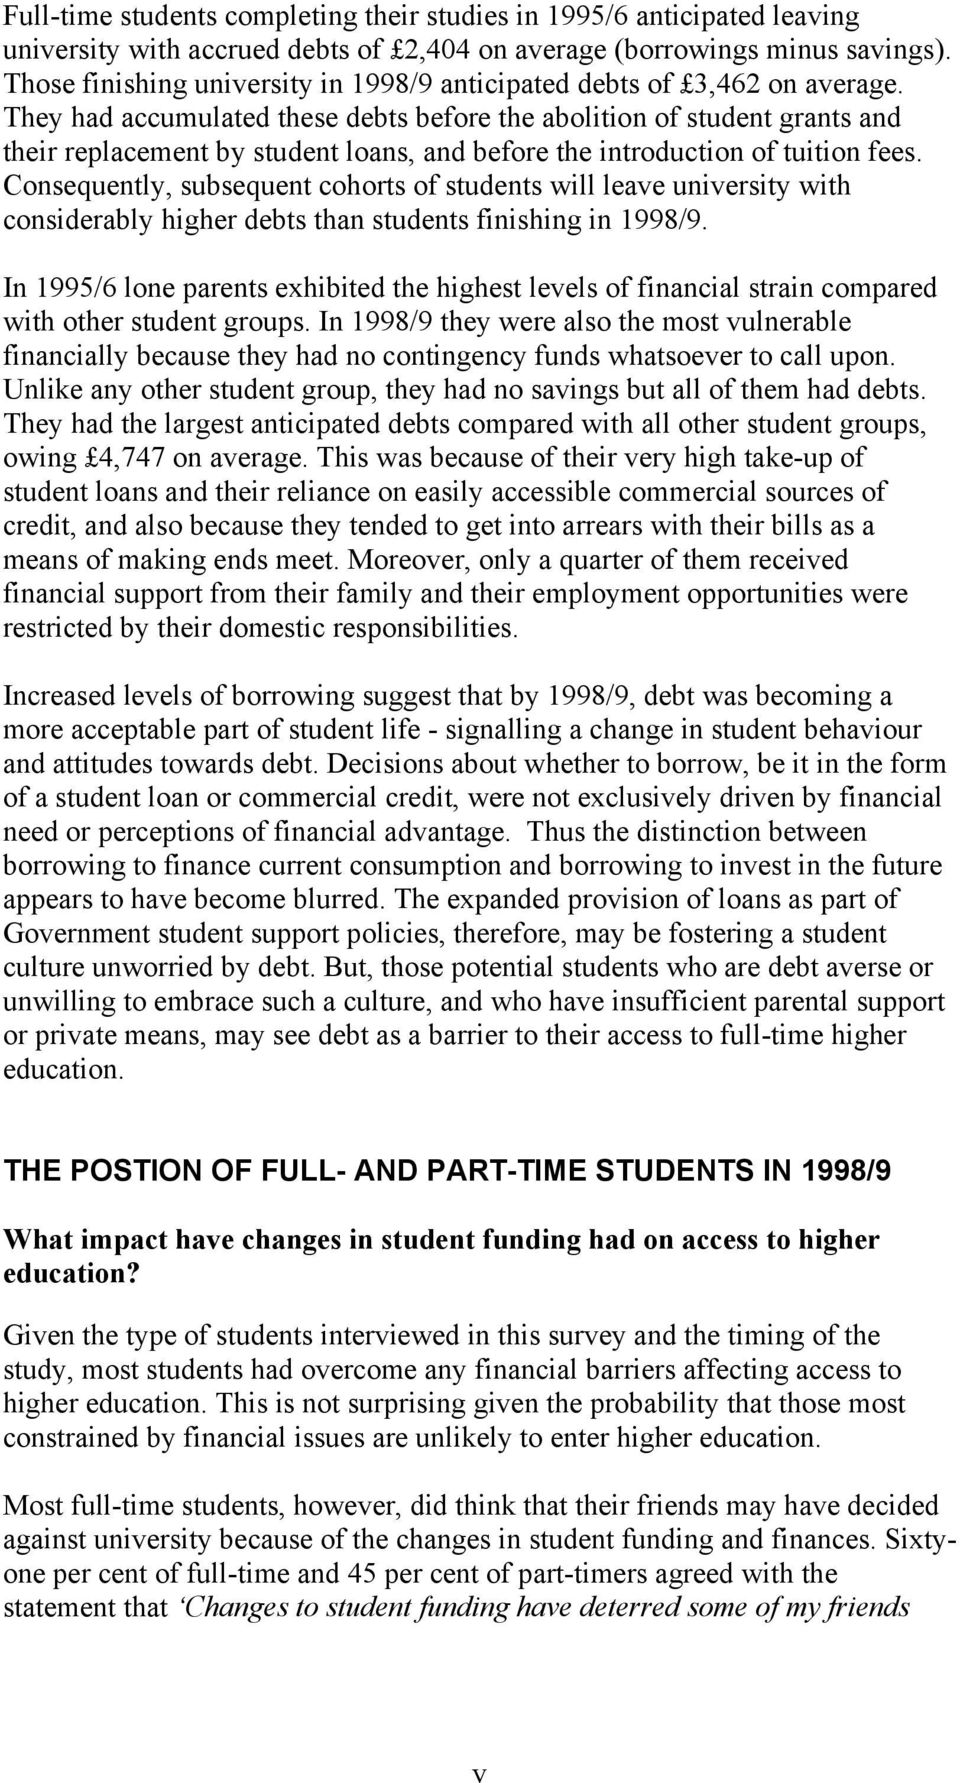 They had accumulated these debts before the abolition of student grants and their replacement by student loans, and before the introduction of tuition fees.